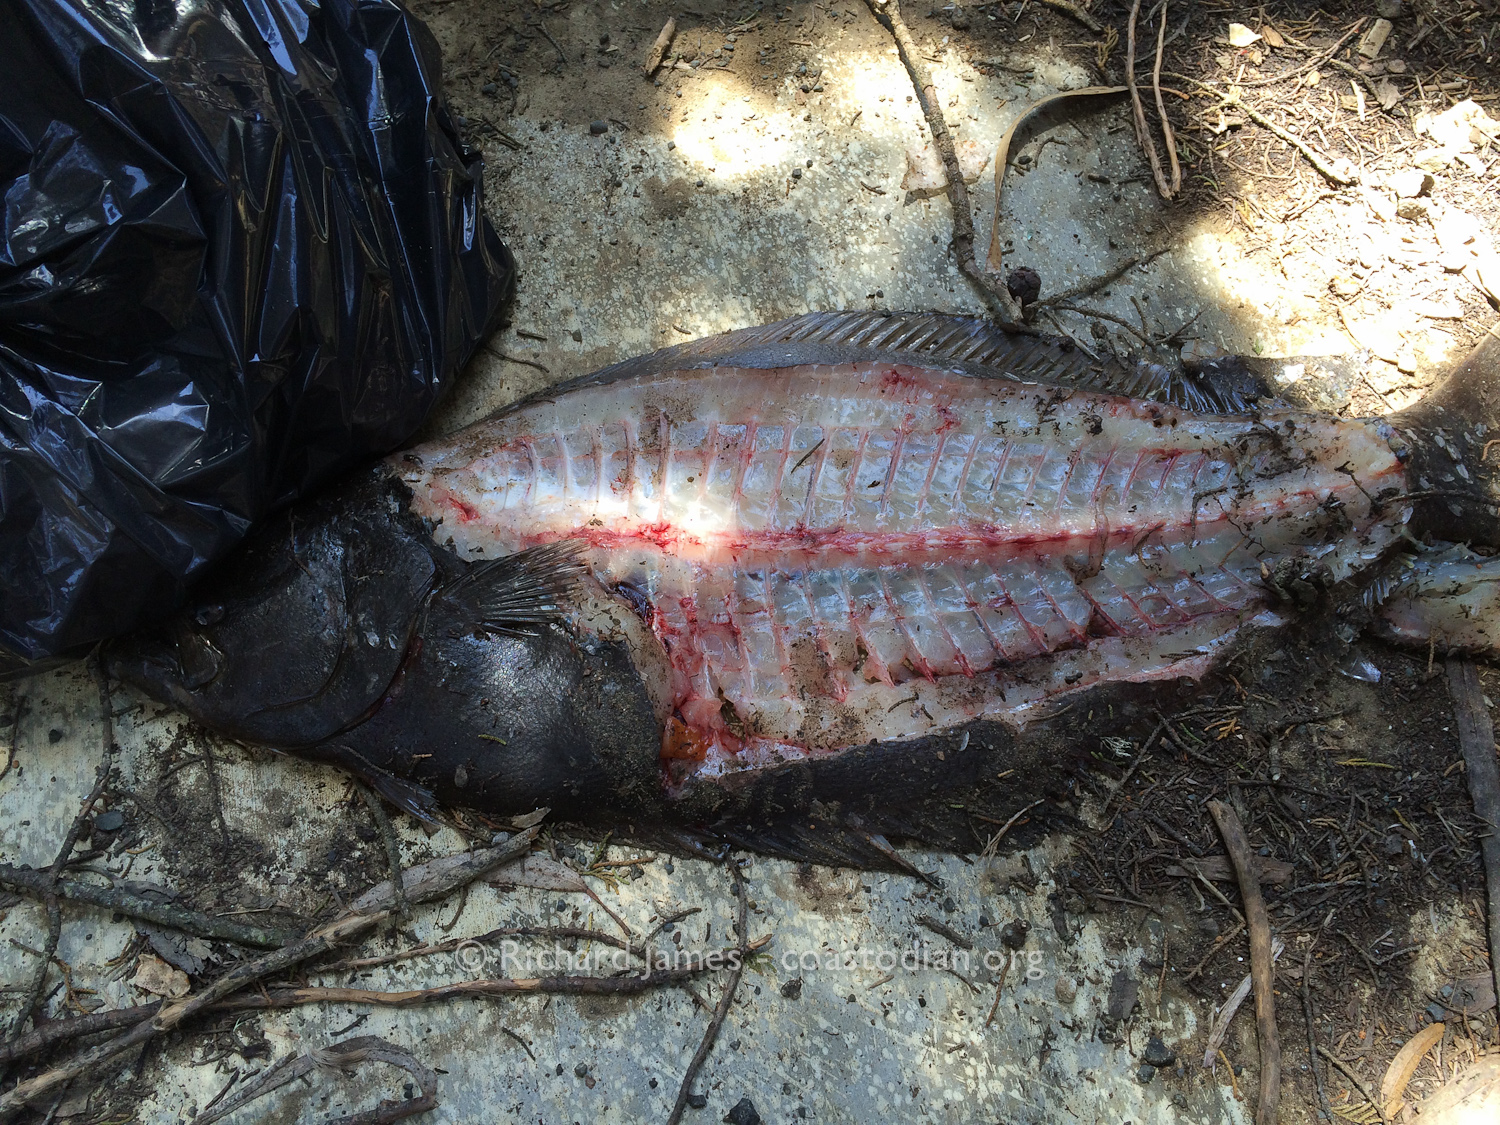 Sloppy filleting  of a halibut, left to attract coons and ravens.